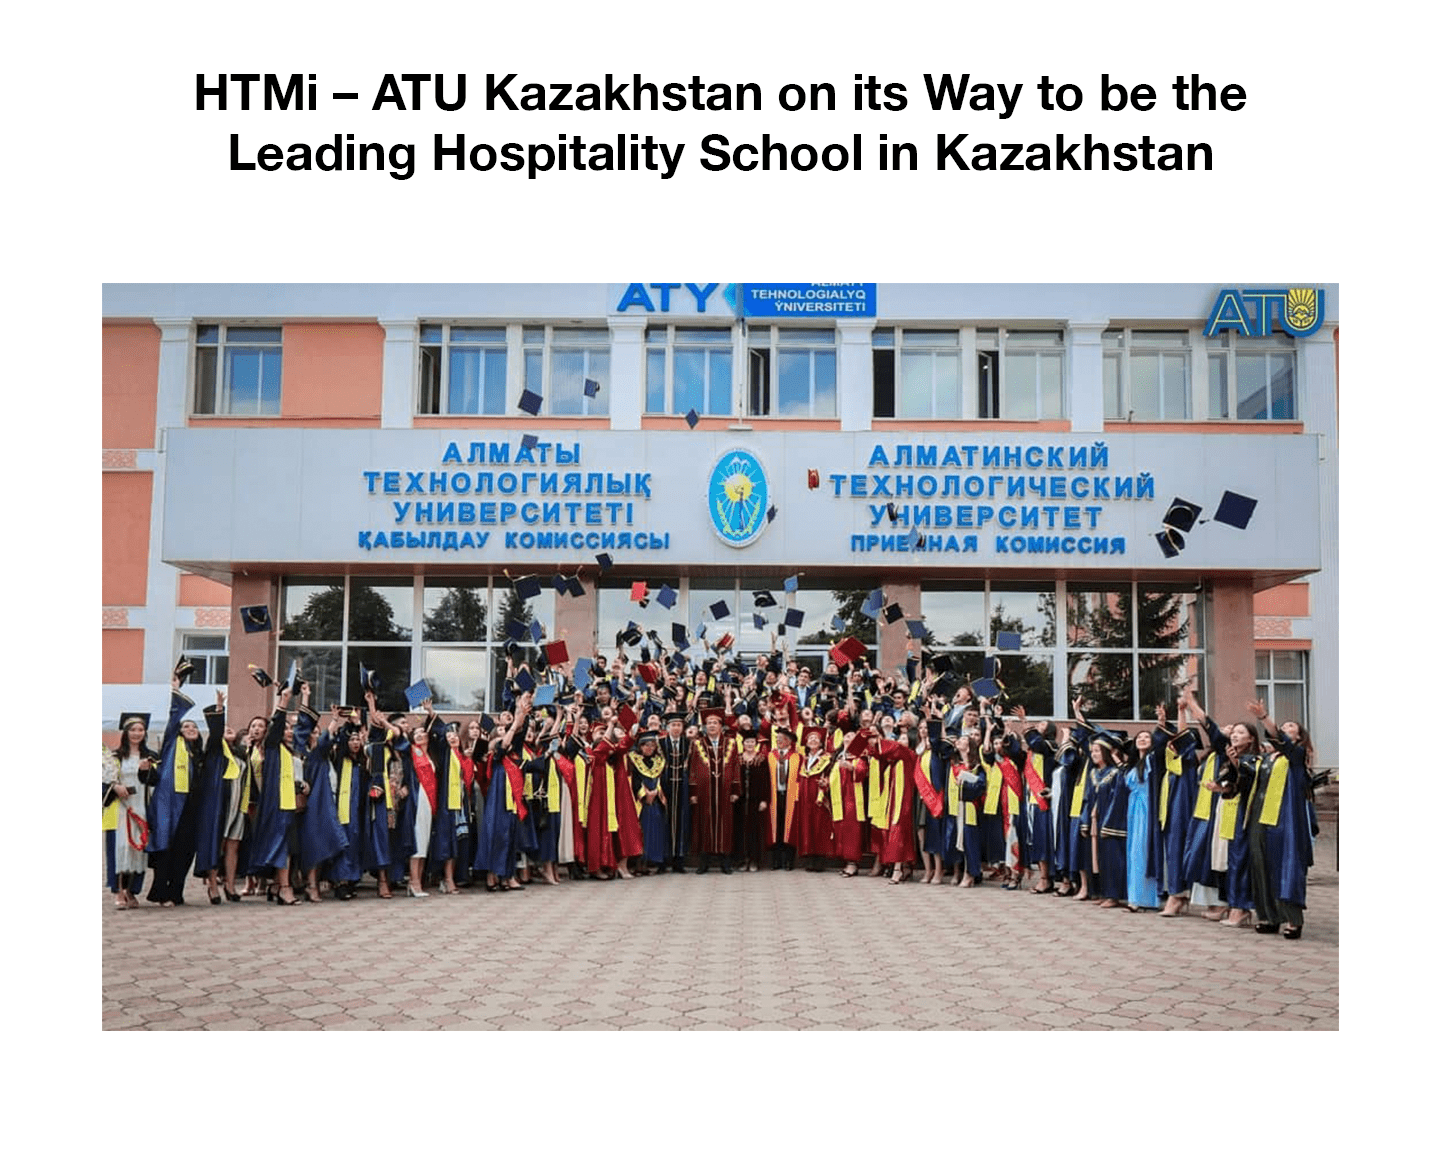 HTMi – ATU Kazakhstan on its Way to be the Leading Hospitality School in Kazakhstan